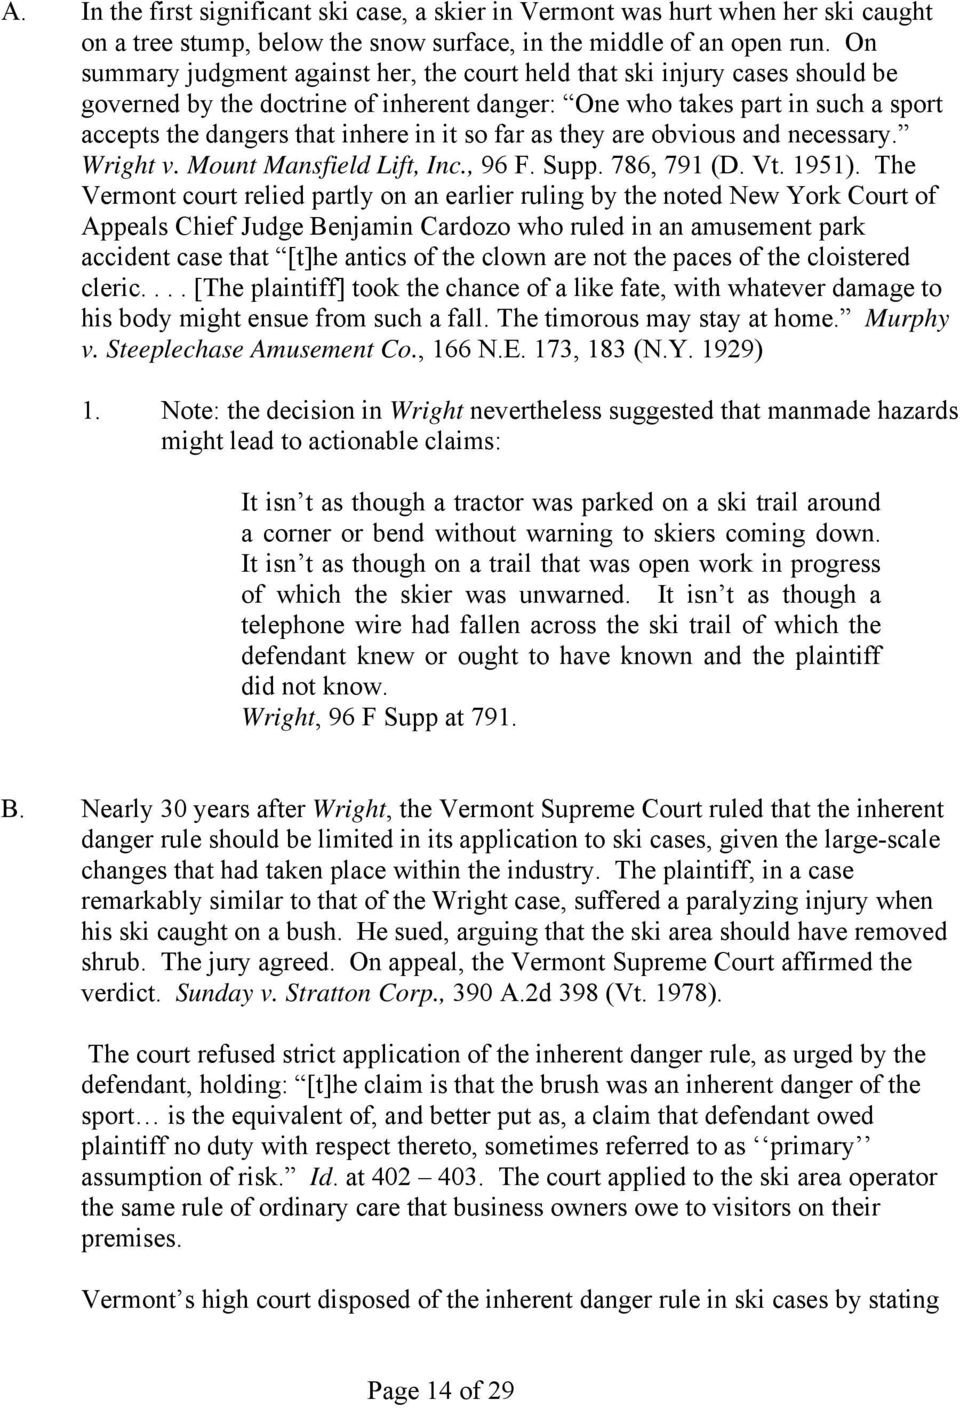 so far as they are obvious and necessary. Wright v. Mount Mansfield Lift, Inc., 96 F. Supp. 786, 791 (D. Vt. 1951).